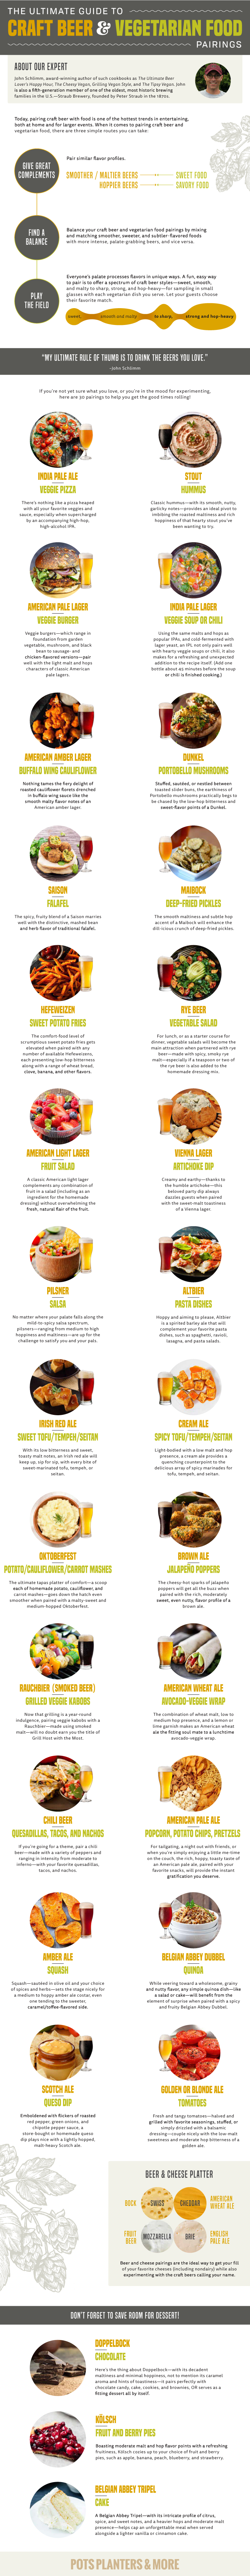 How to Pair Craft Beer with Vegetarian Cuisine